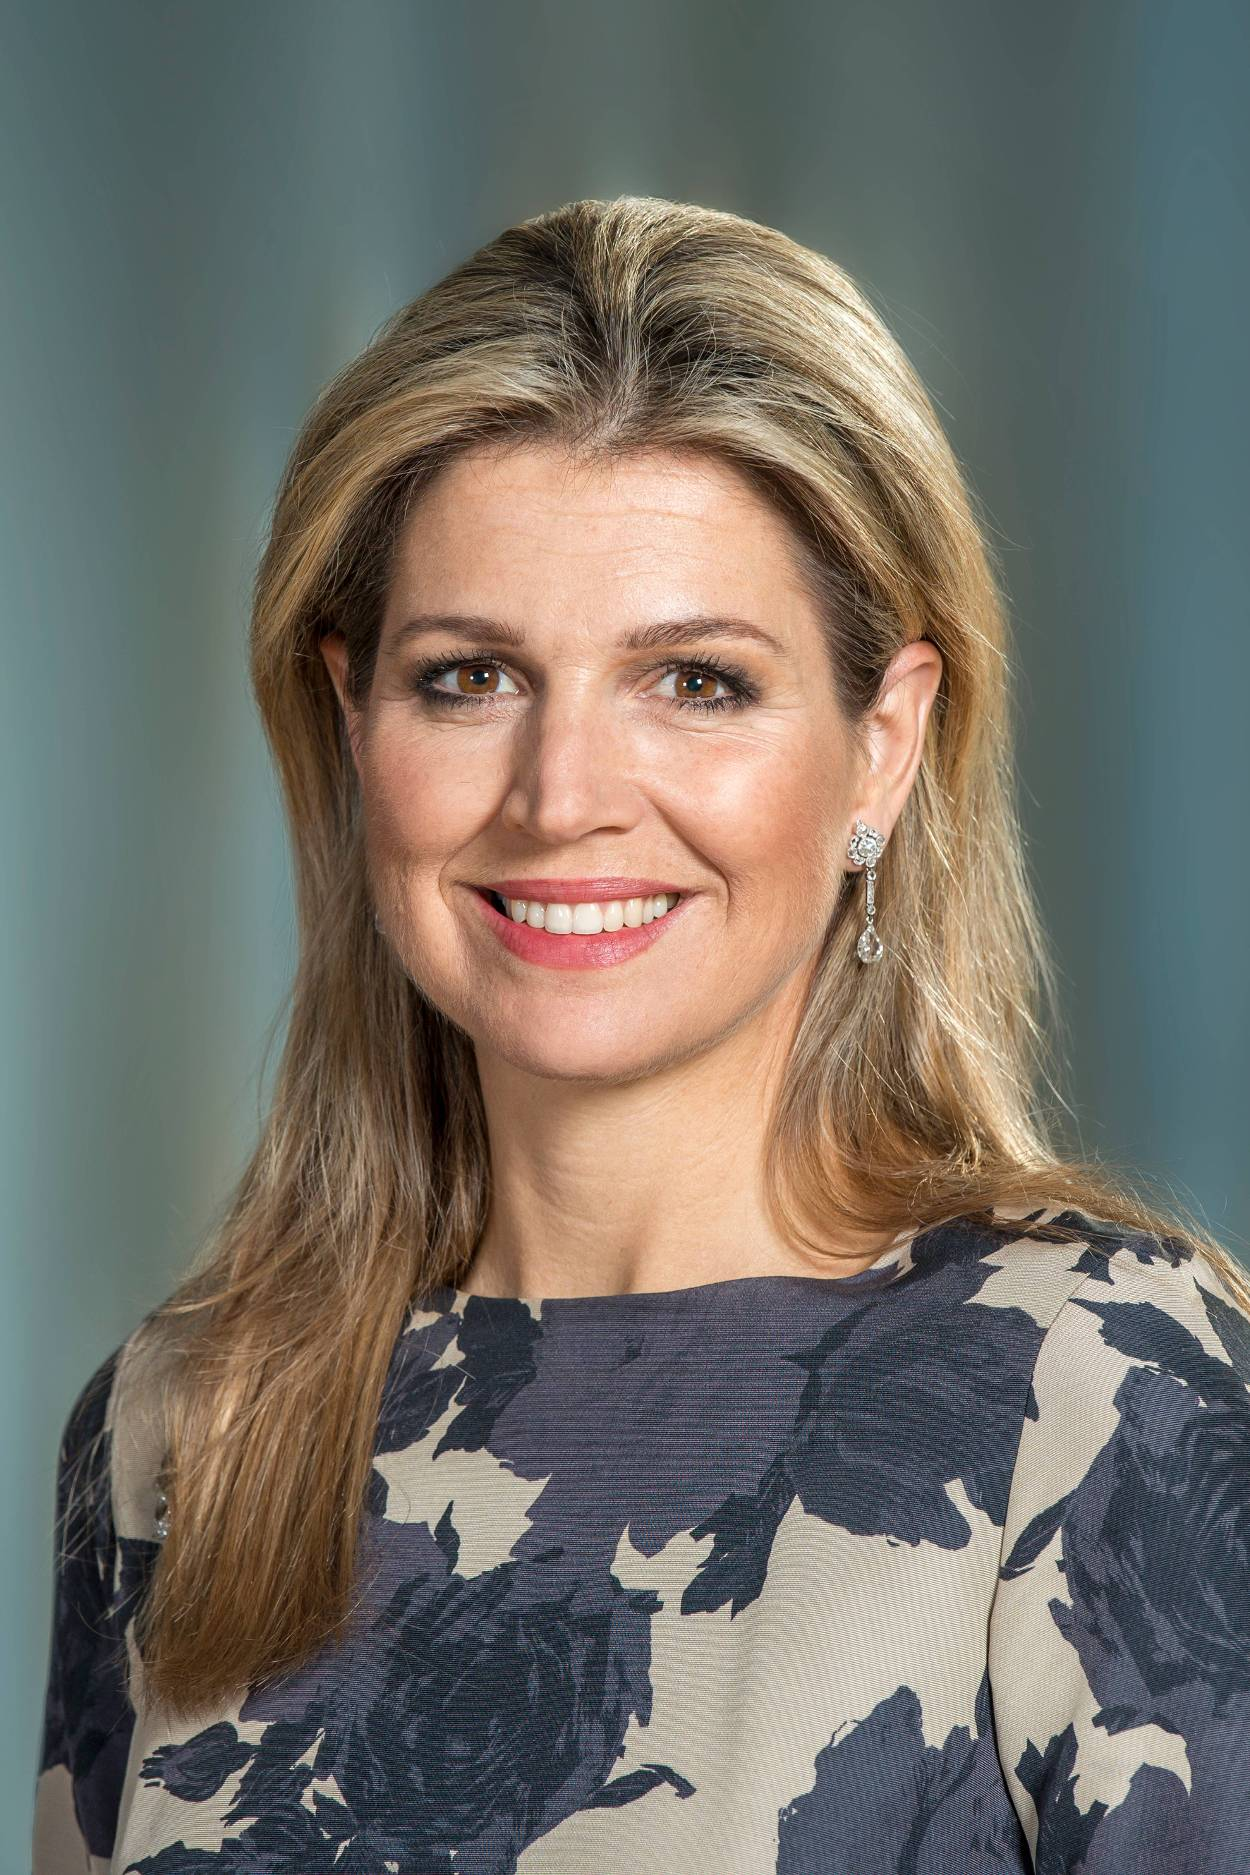 Queen Máxima - Máxima Zorreguieta Cerruti was born to Jorge Zorreguieta and María del Carmen Cerruti Carricart in Buenos Aires, Argentina, on May 17, 1971. She has two brothers and a sister, as well as two half-sisters through her mother.Máxima was educated at an English language school in Argentina and later attended Pontifical Catholic University of Argentina where she received a bachelor's degree. She earned a master's degree in the U.S.Máxima married then-Prince Willem-Alexander on February 2, 2002. She retained her Argentine citizenship and gained Dutch. She remained a Roman Catholic. The couple has three daughters: Princesses Amalia, Alexia, and Ariane.She became the Queen of the Netherlands upon her husband's ascension in 2013 after the abdication of his mother, Beatrix.(Photo:Jeroen van der Meyde/RVD)